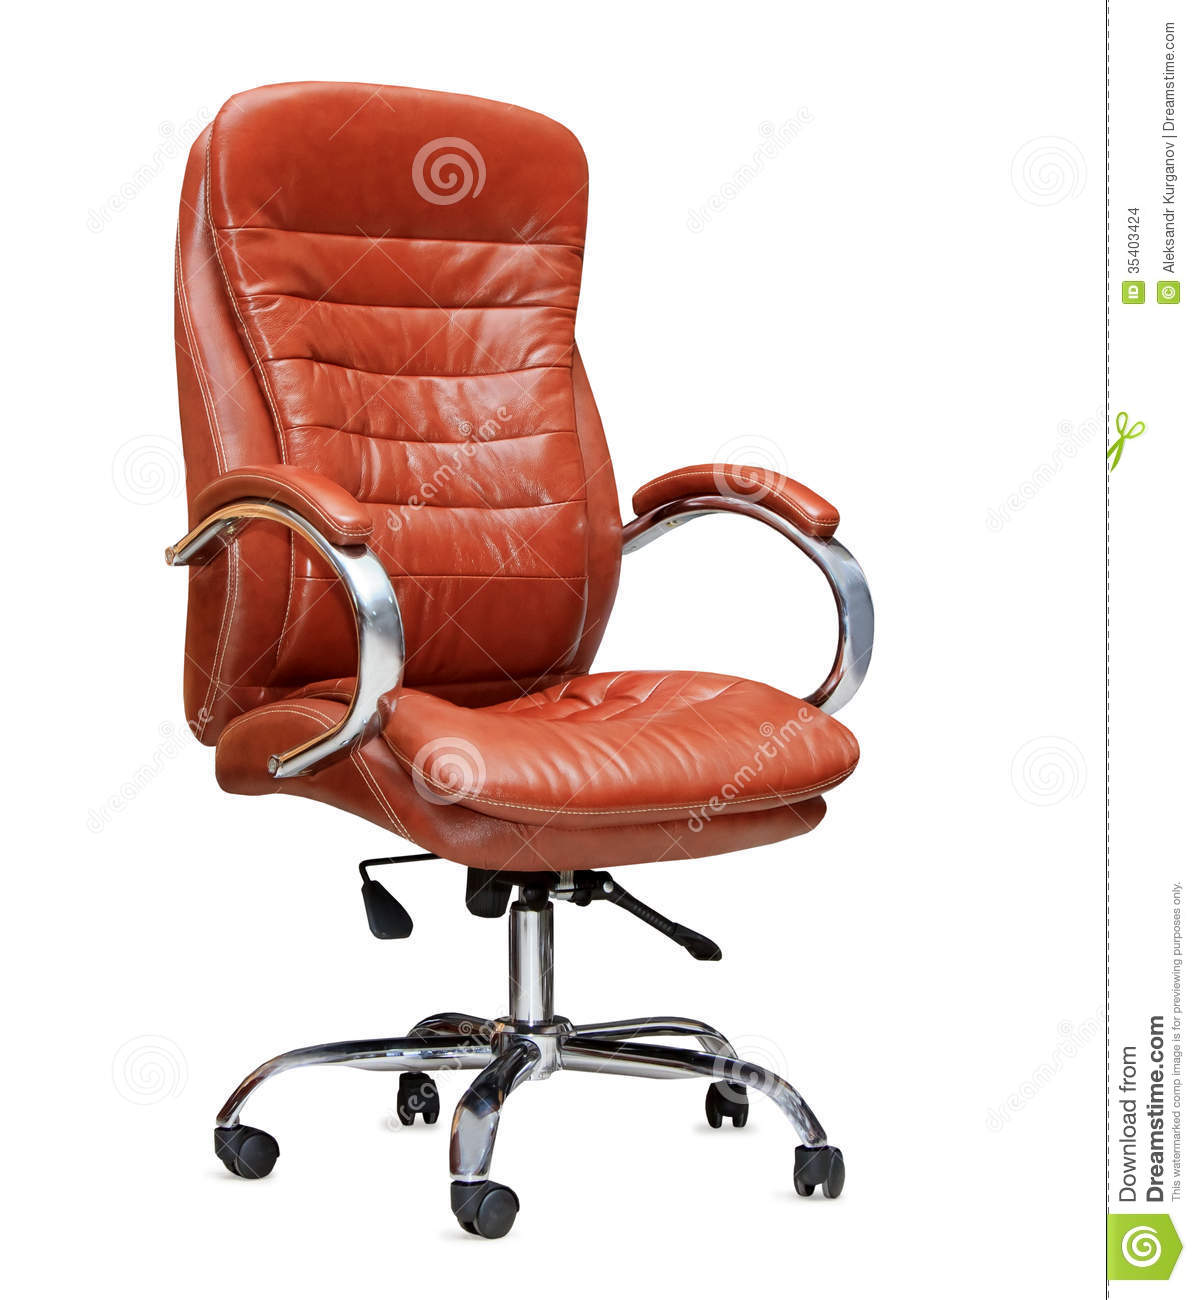 Orange Leather Chair The Office Chair From Orange Leather Isolated Stock